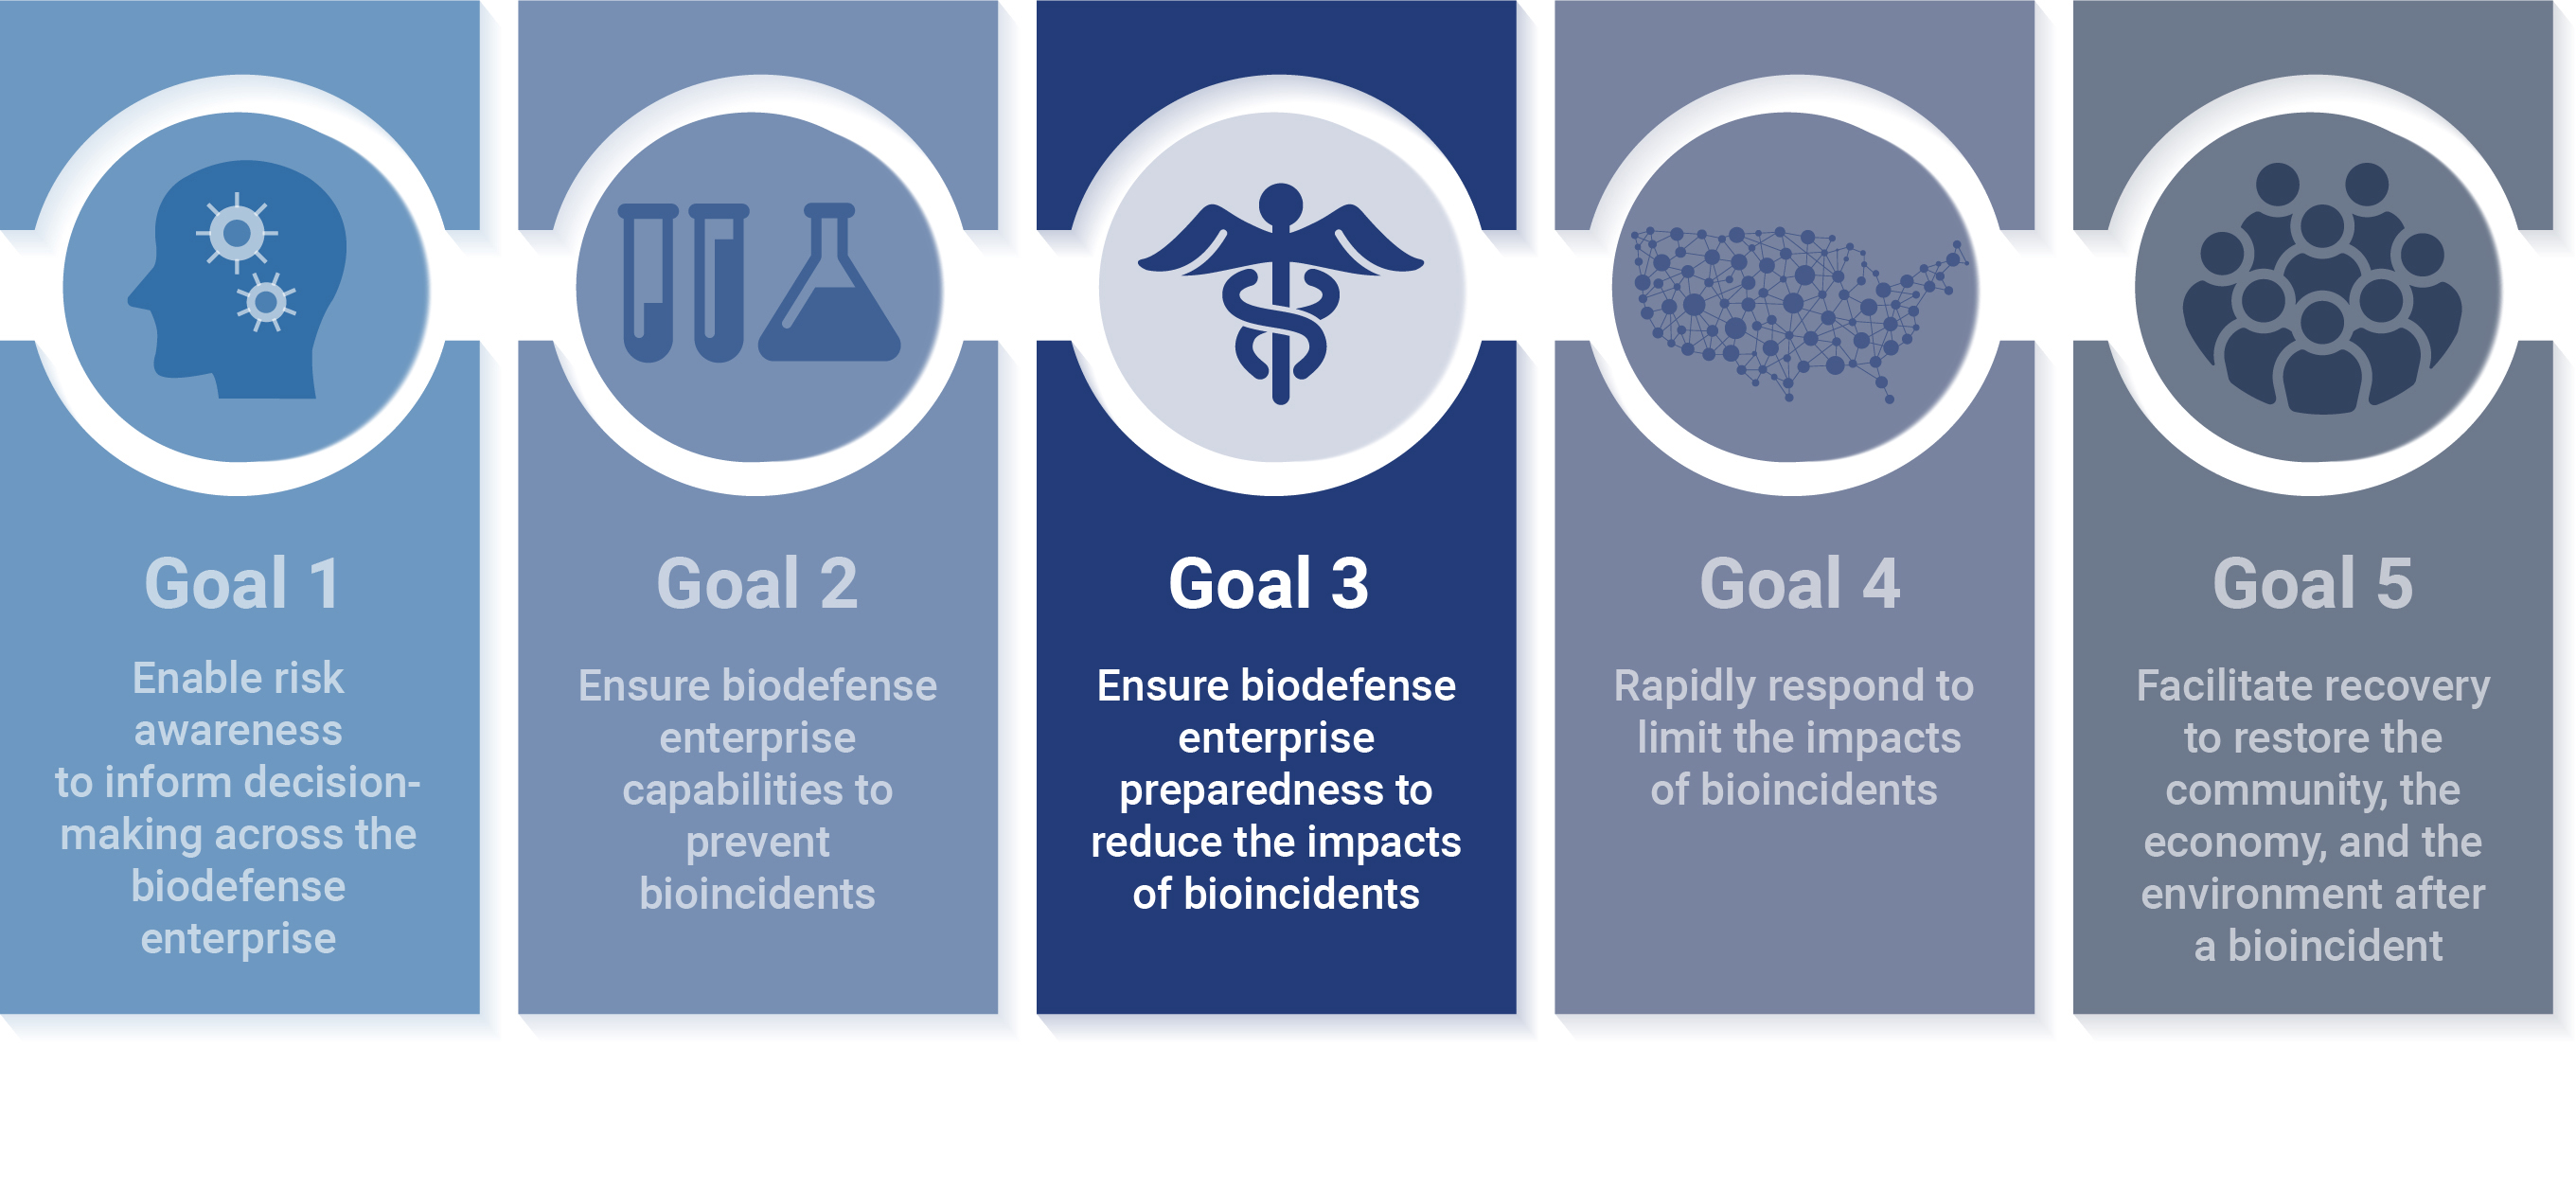 Illustration of the 5 biodefense strategies, with a focus on Goal 3, which is to ensure biodefense enterprise preparedness to re